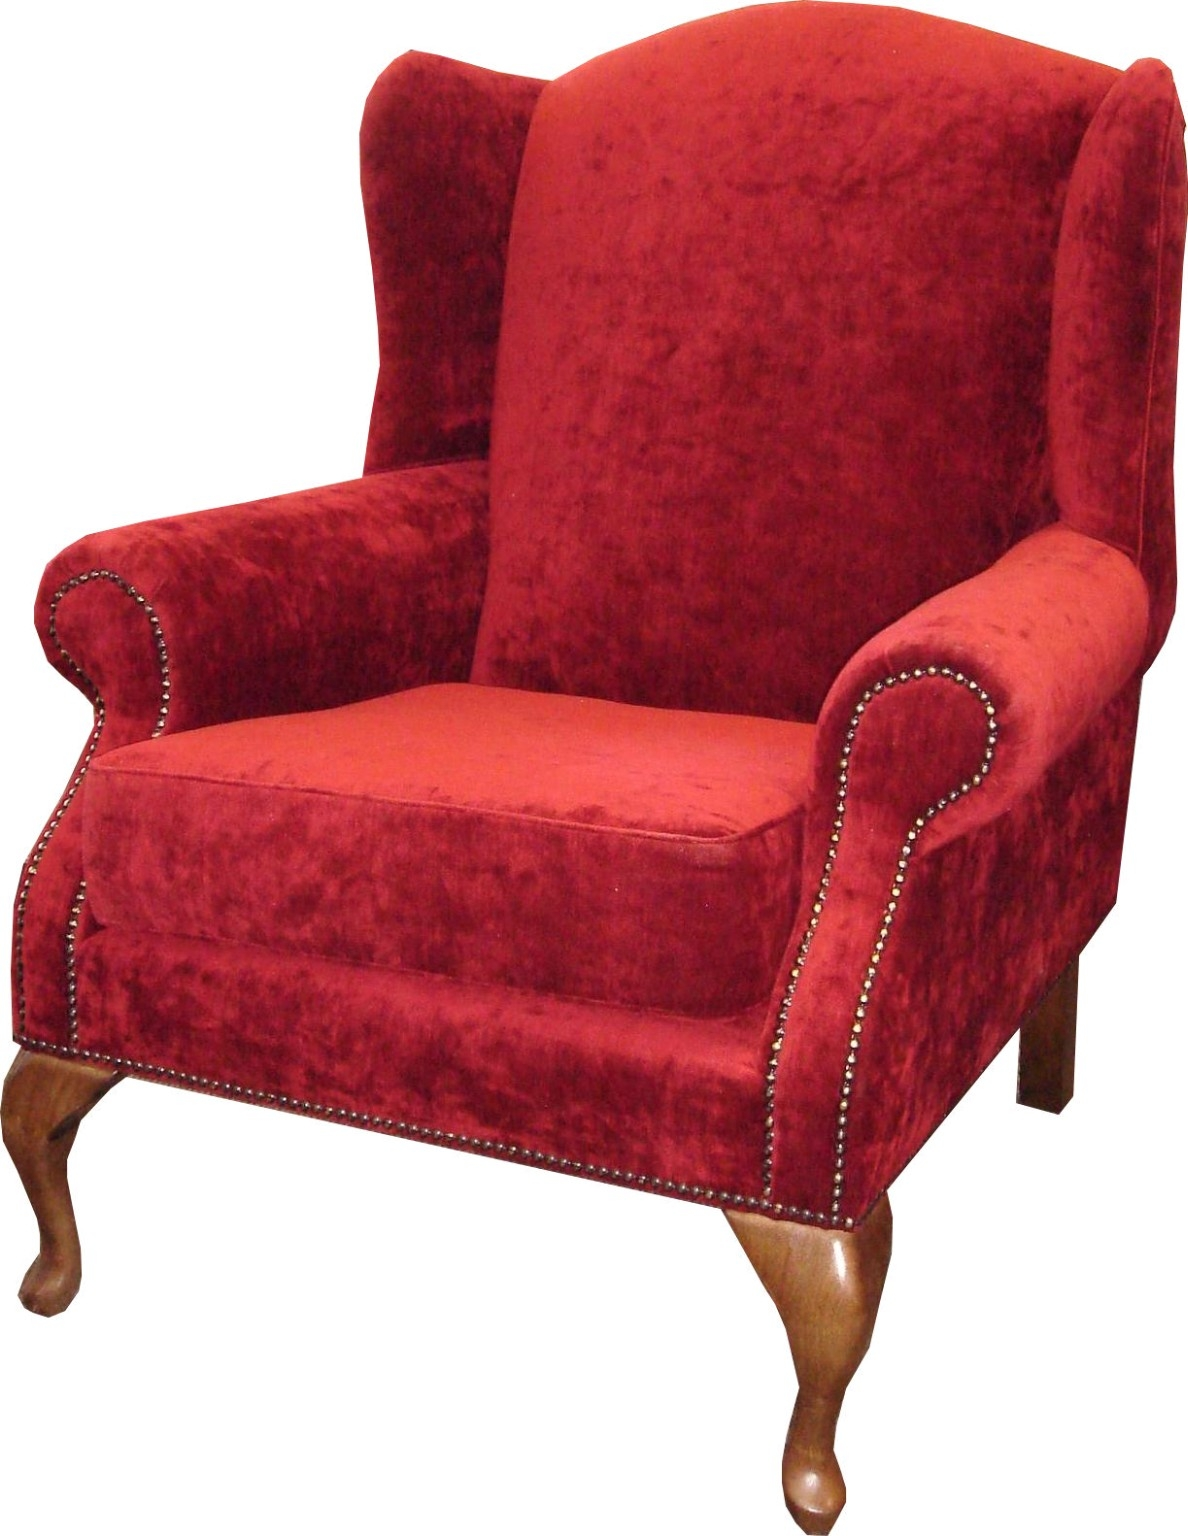 59 Sofa Chairs Abbott Sofa Rowe Furniture Rowe Furniture Intended For Red Sofas And Chairs (Image 2 of 15)